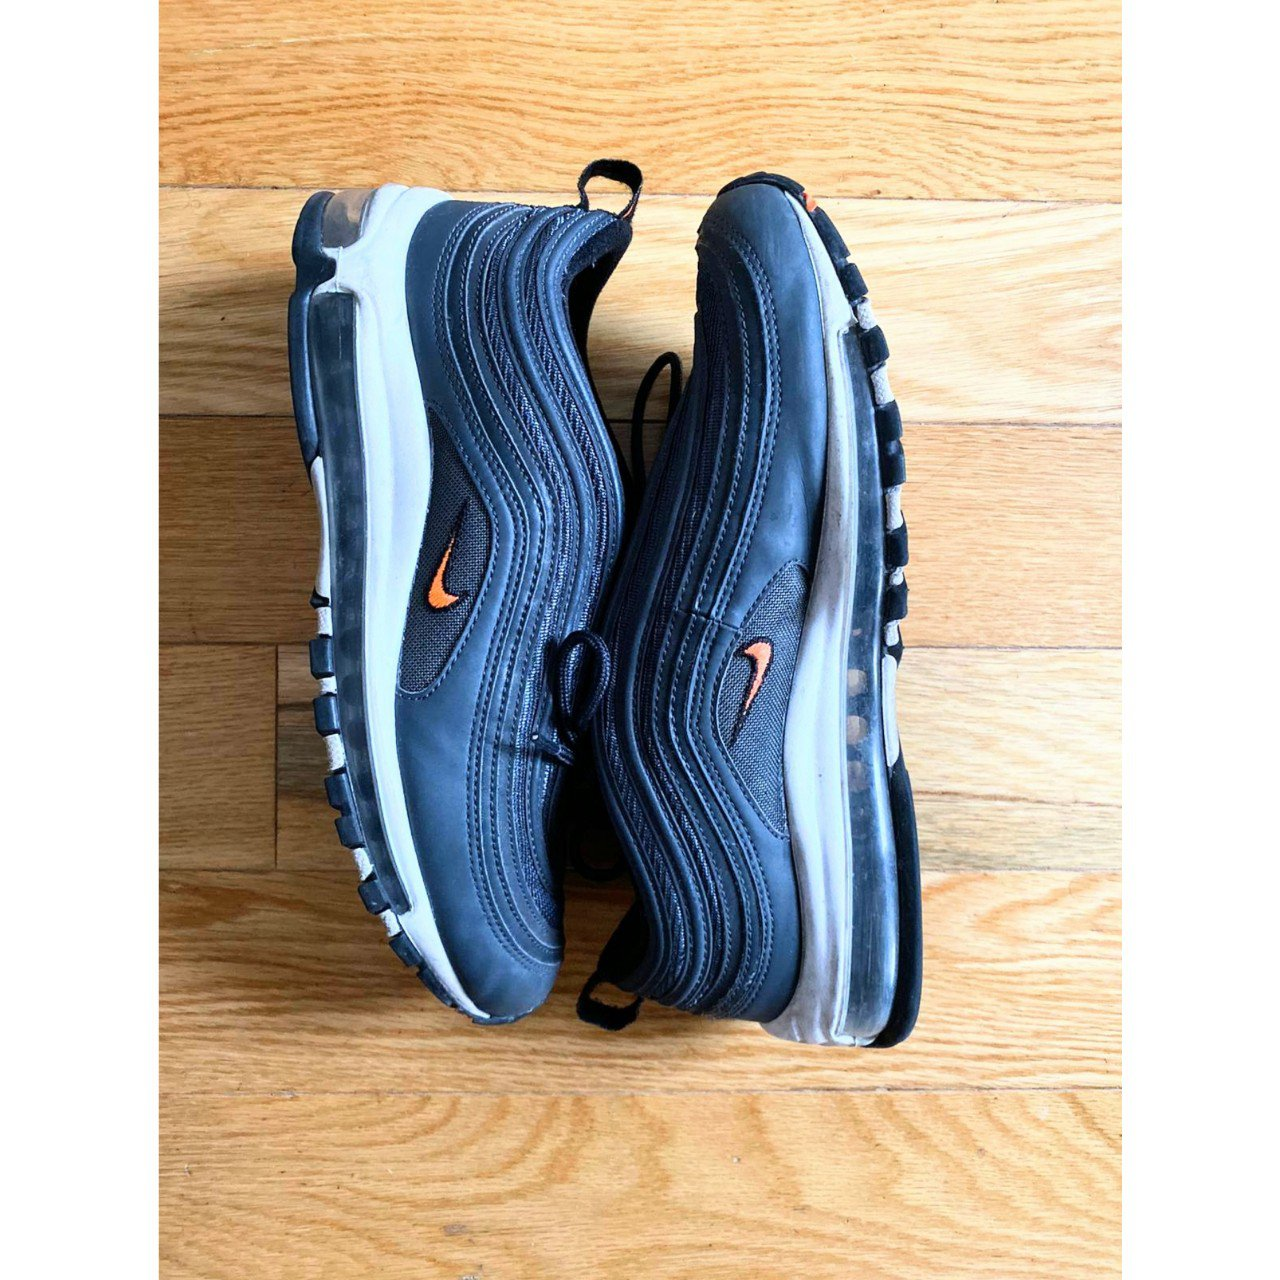 Men's Air Max 97 'AnthraciteTotal Orange Black' Depop